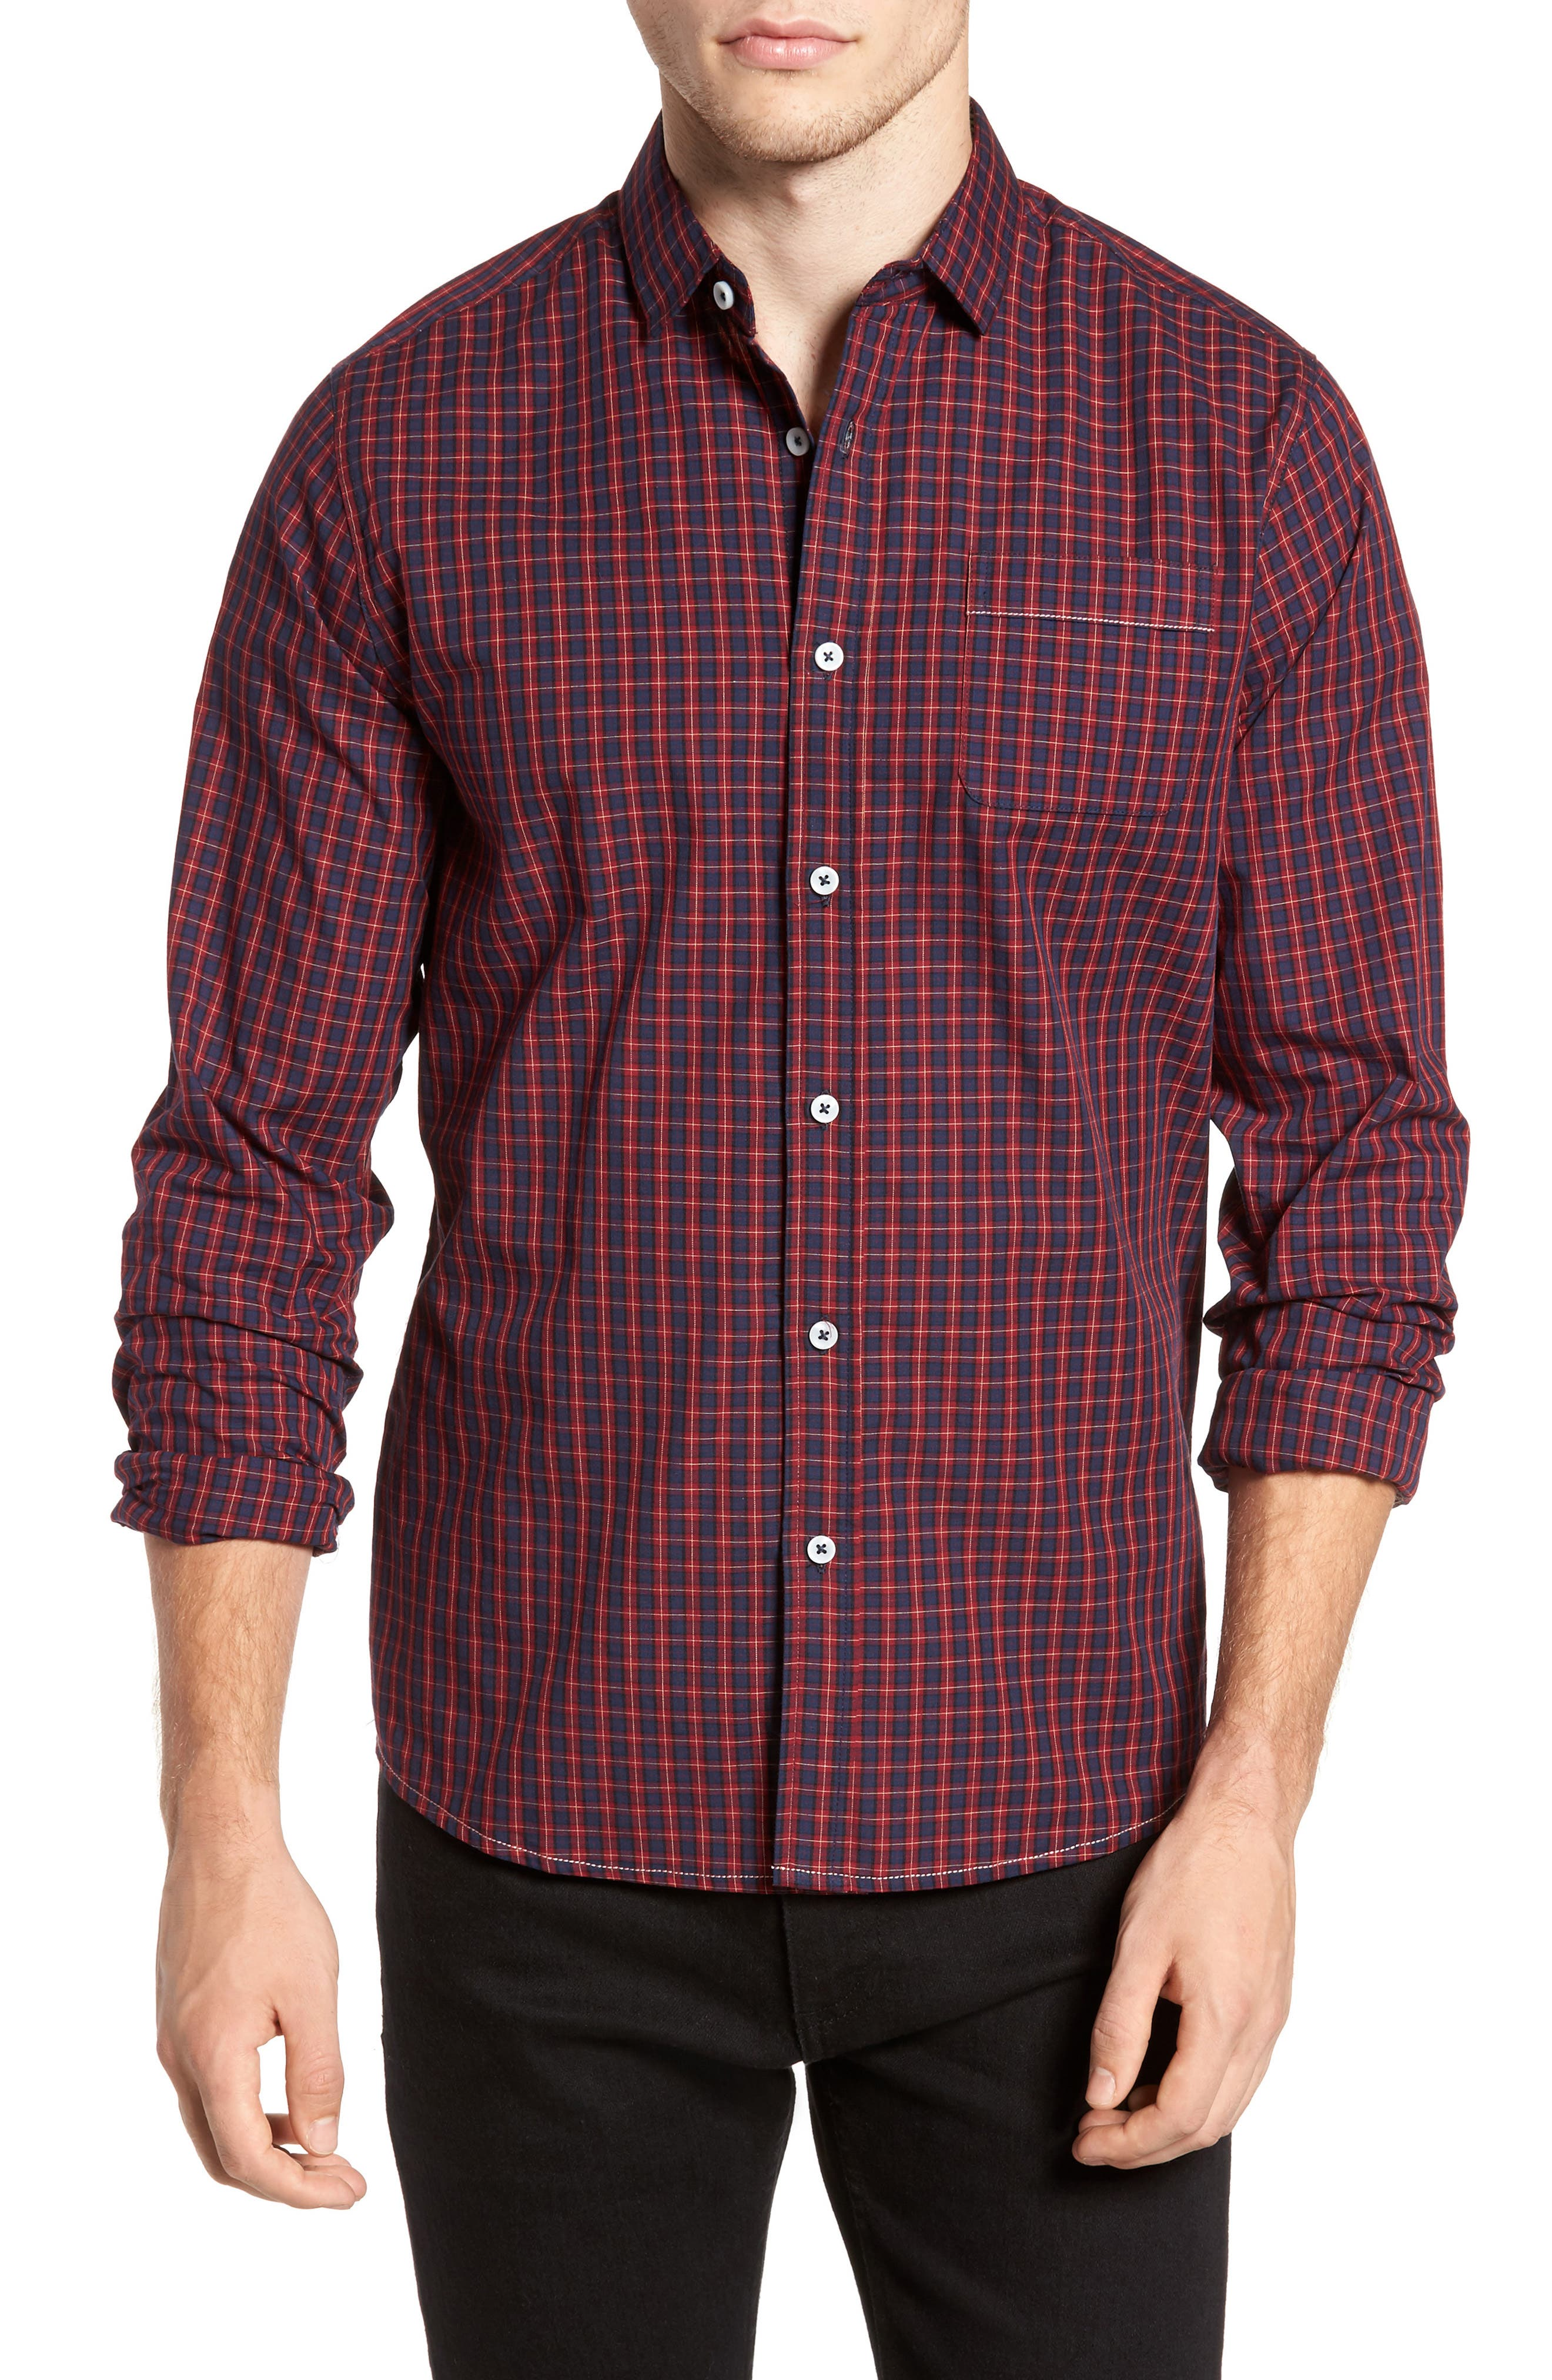 Alternate Image 1 Selected - Descendant of Thieves Tinto Plaid Woven Shirt